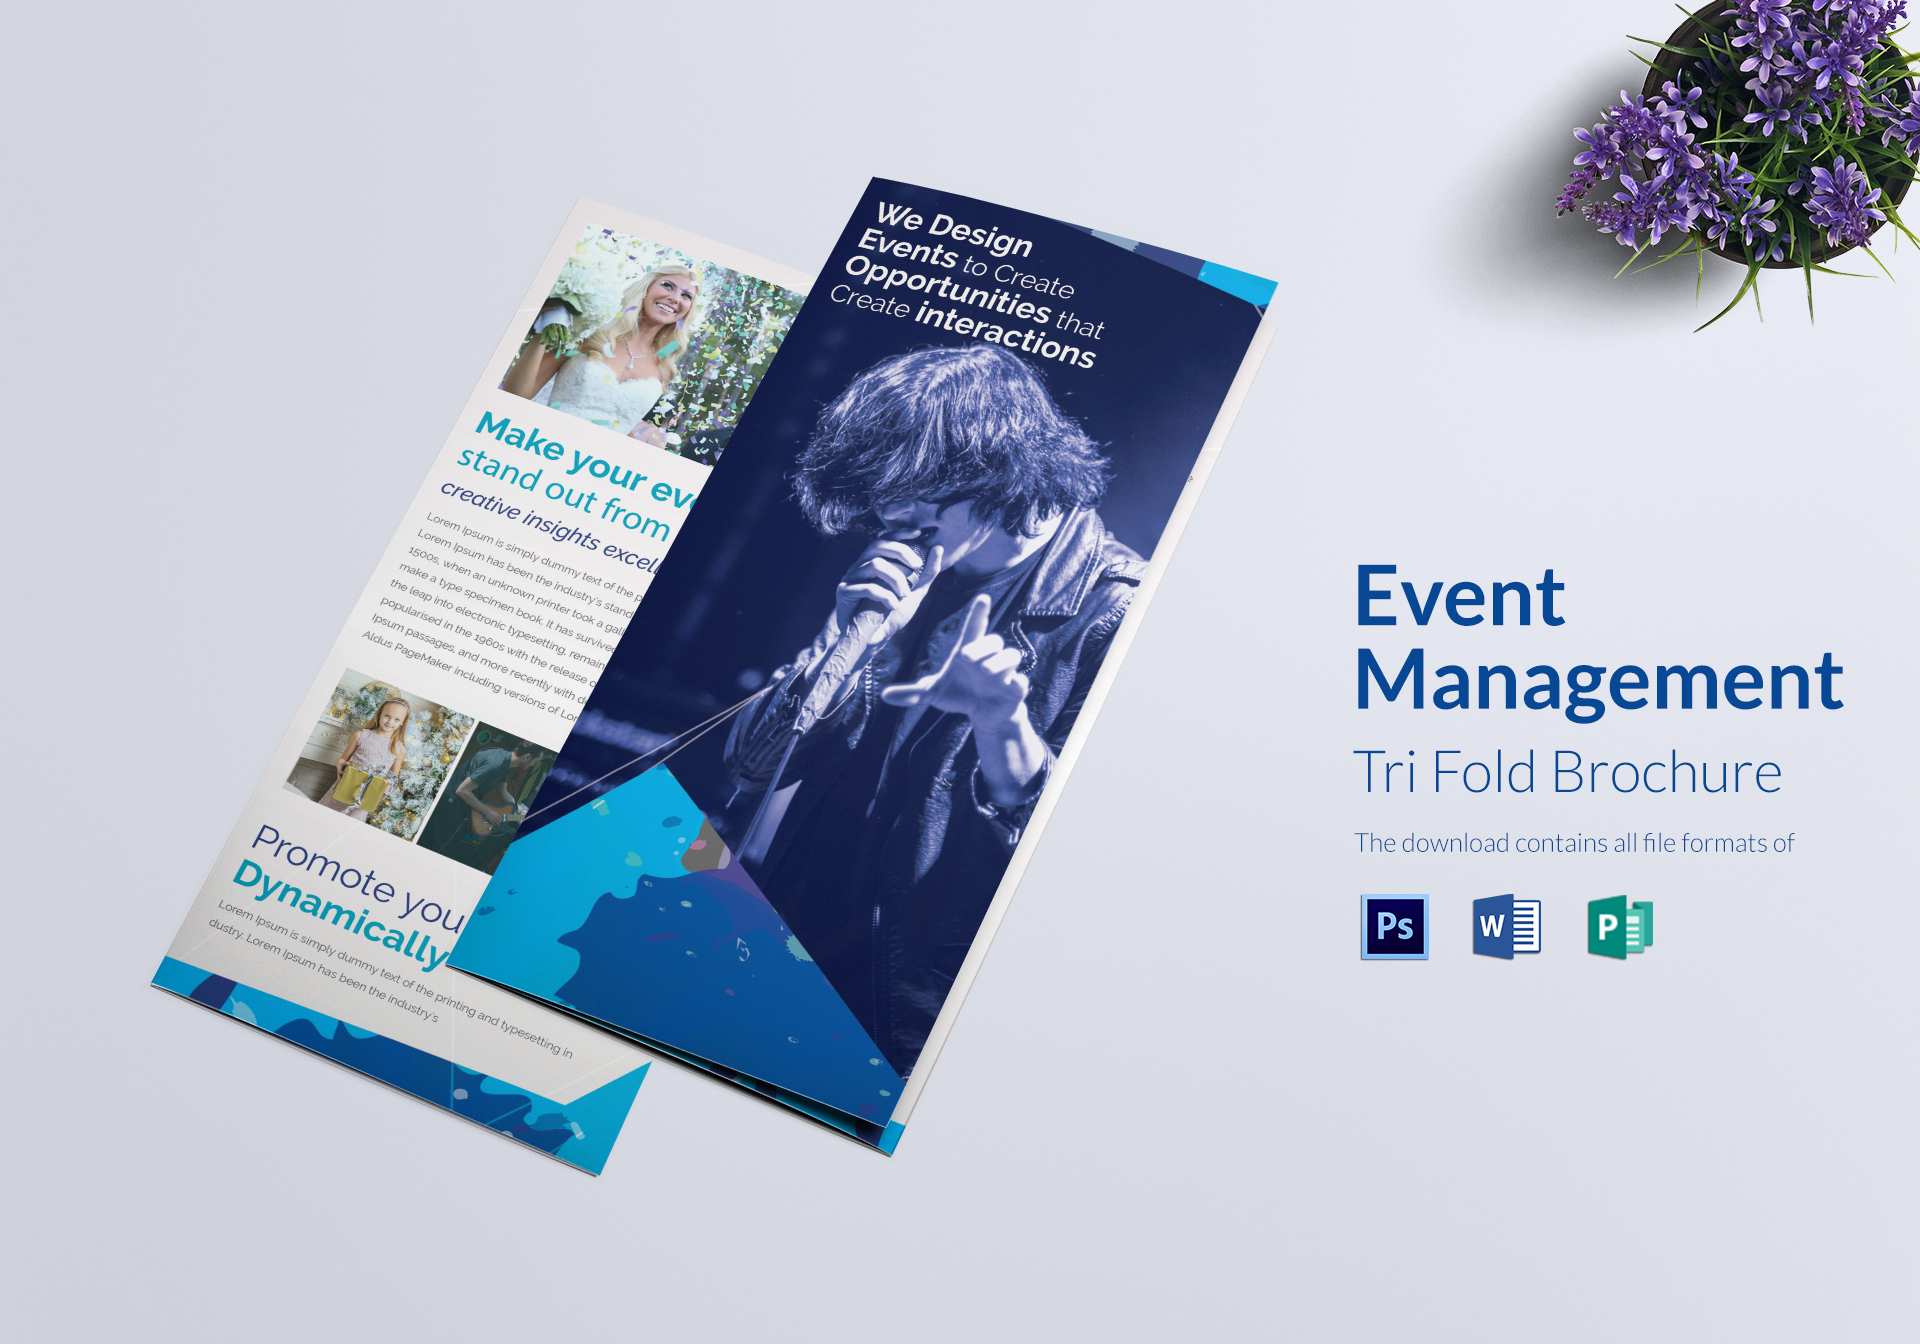 Event Management Tri Fold Brochure